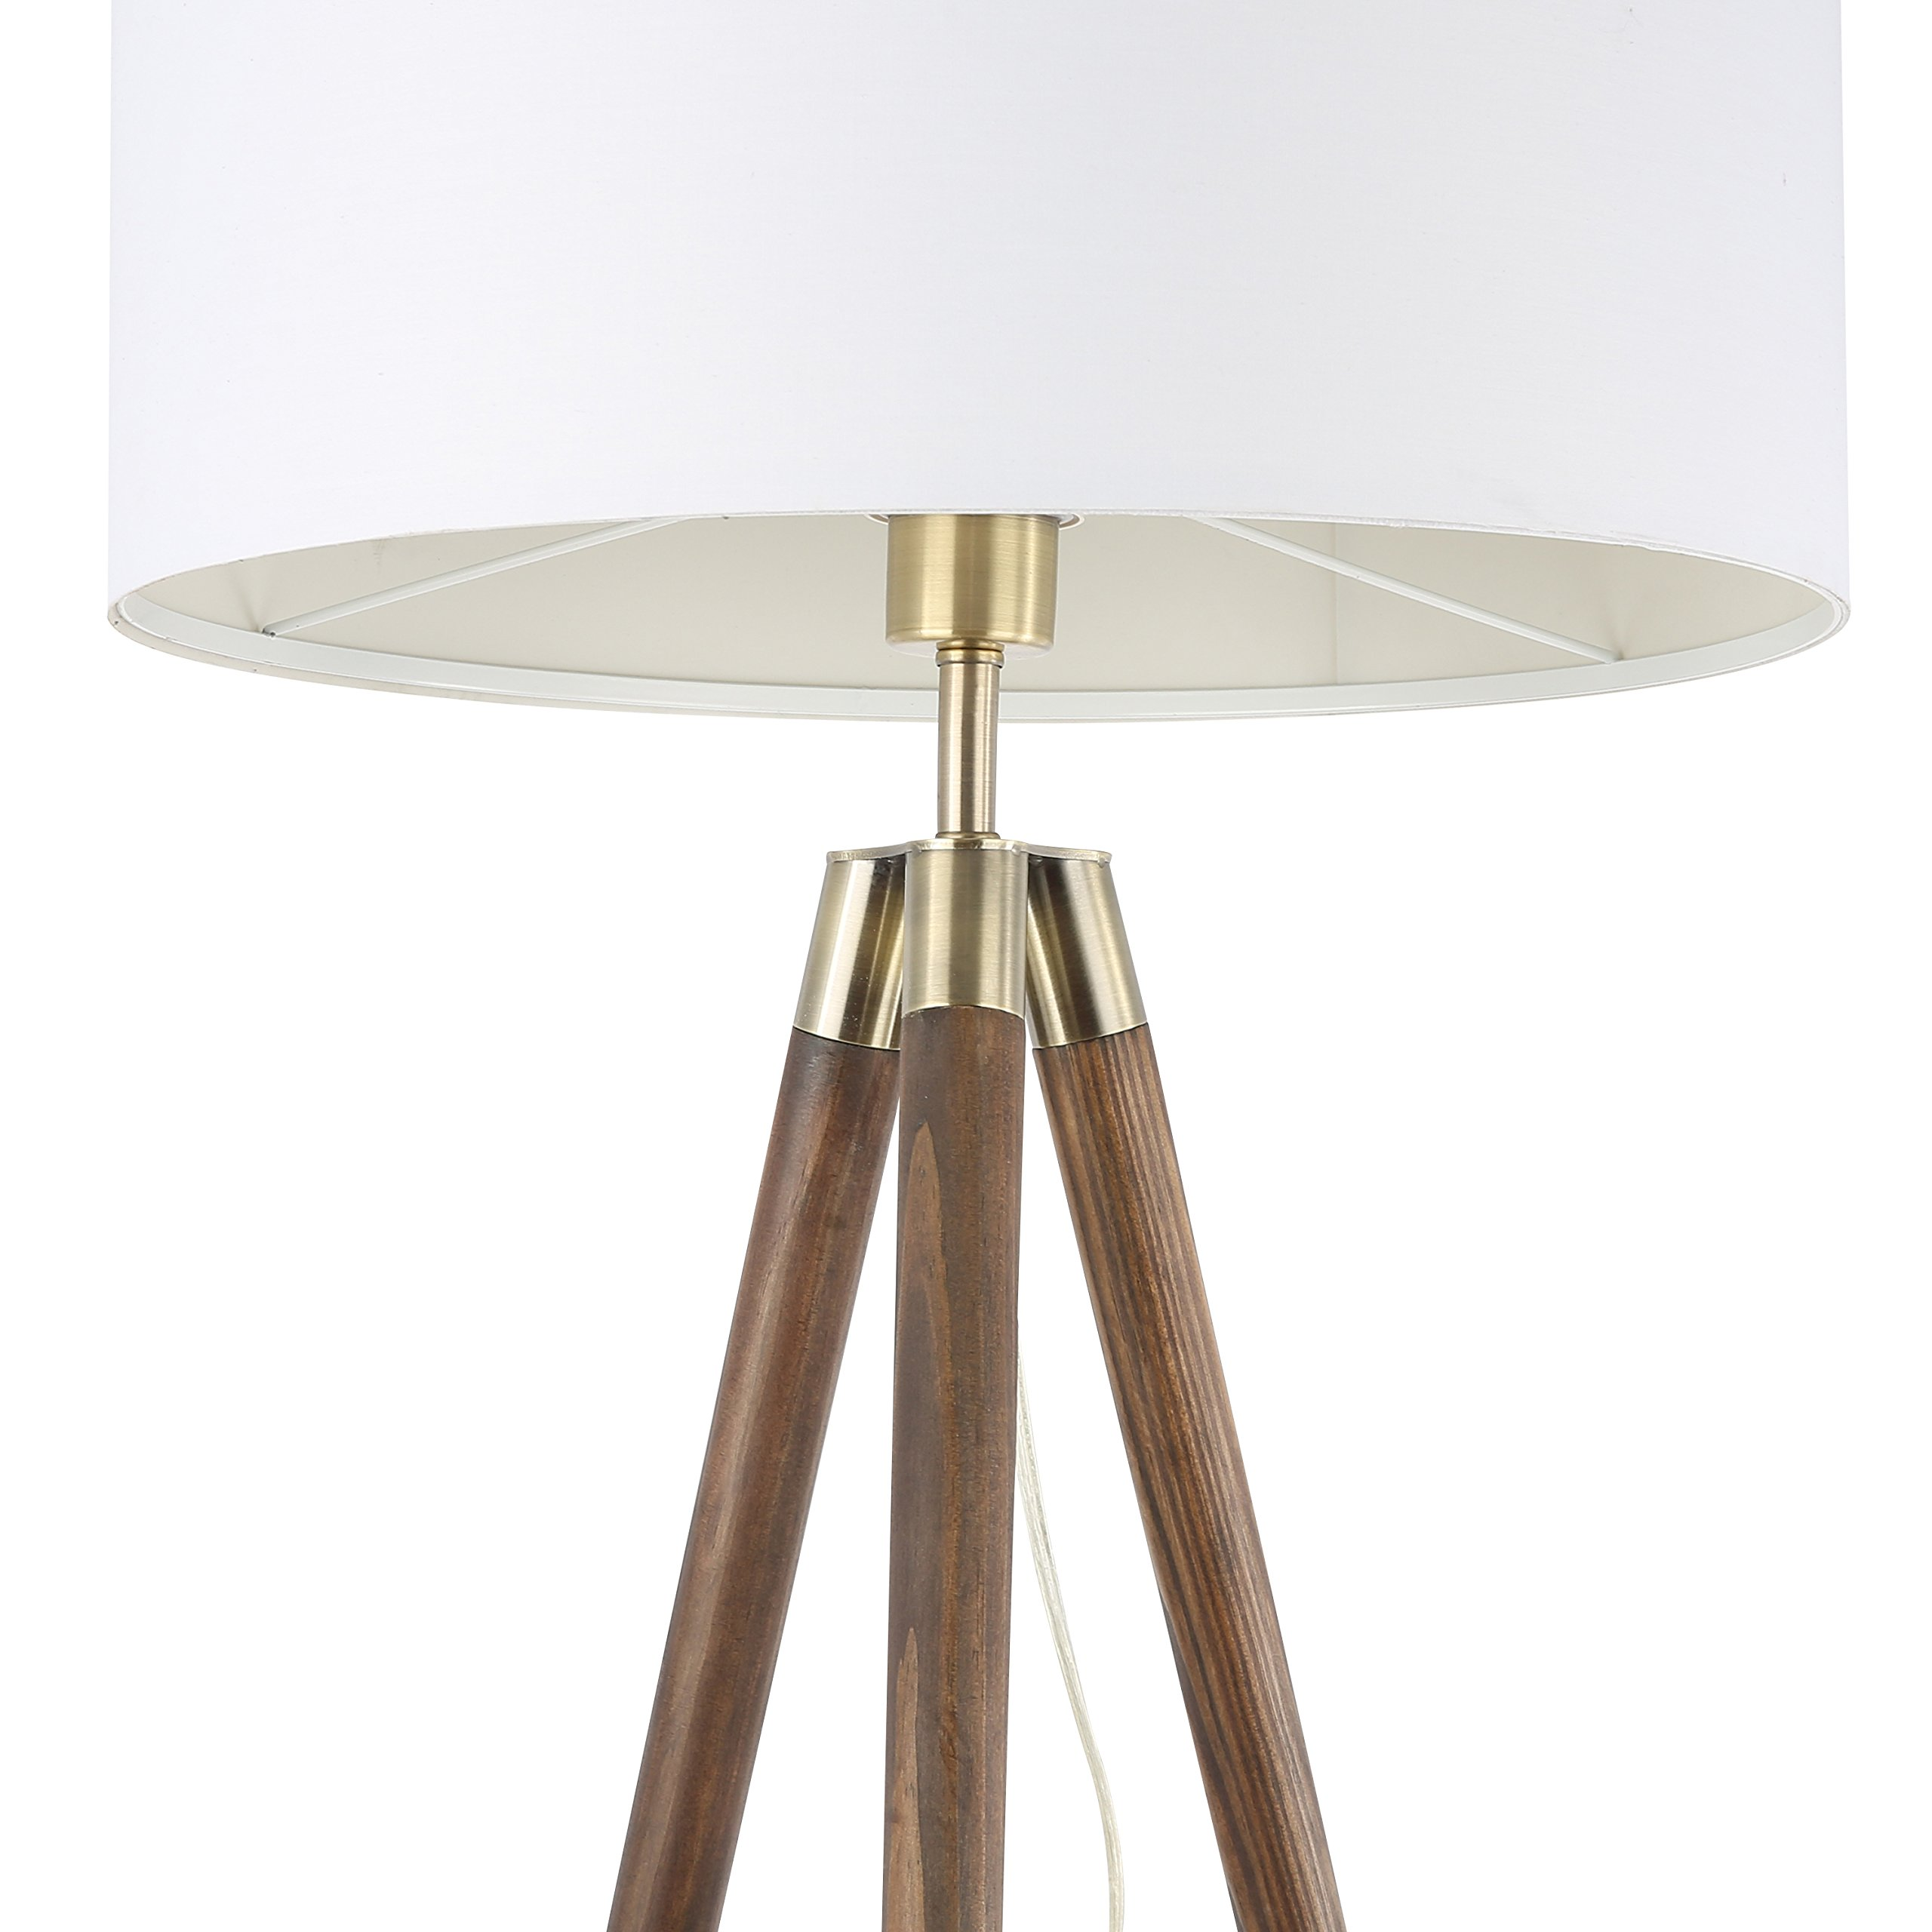 Light Society Celeste Tripod Floor Lamp, Walnut Wood Legs with Antique Brass Finish and White Fabric Shade, Mid Century Contemporary Modern Style (LS-F233-WAL) by Light Society (Image #3)